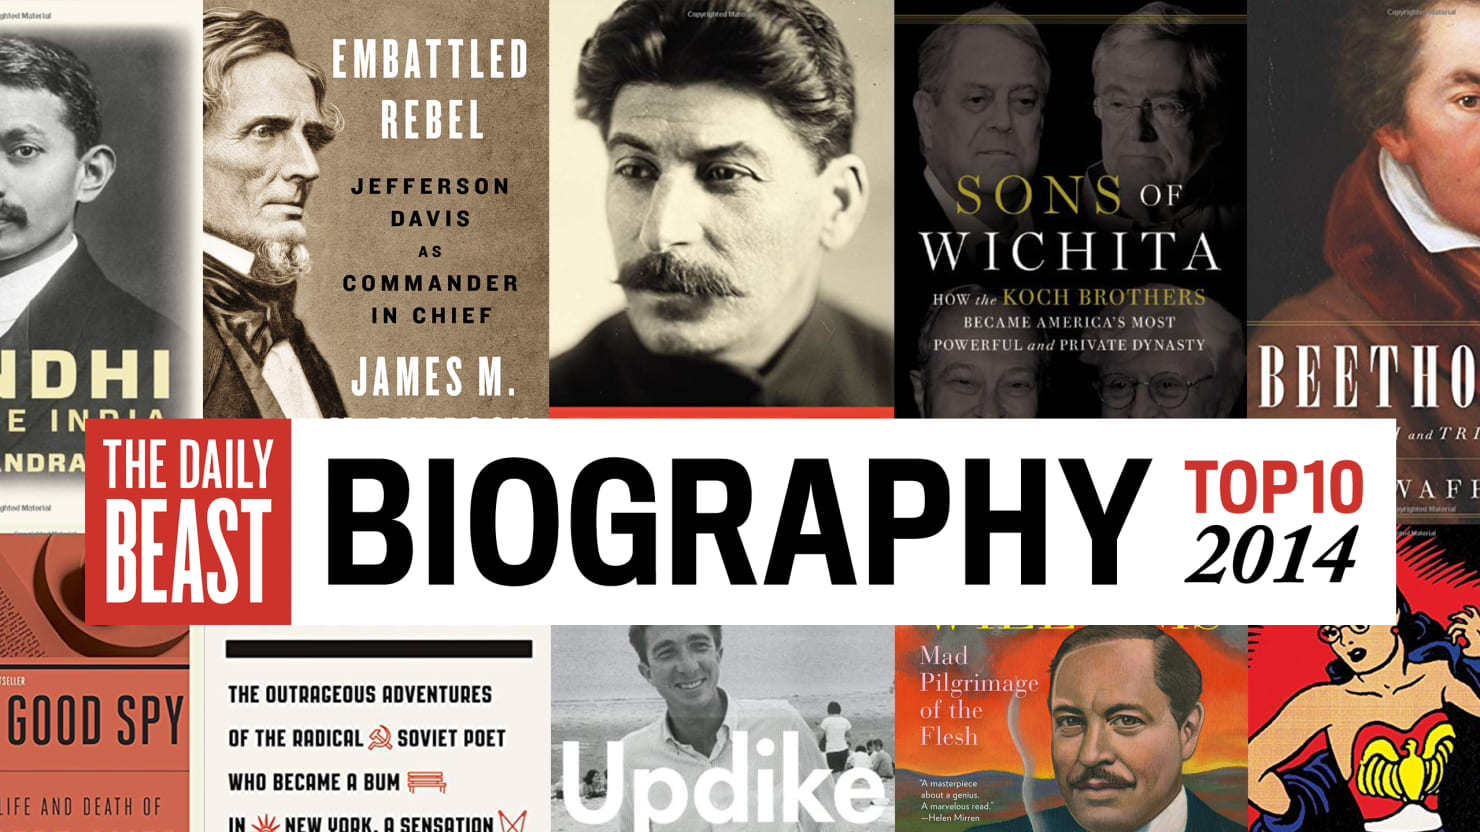 The Best Biographies of 2014, Including Lives of Gandhi, the Koch Brothers, and Jefferson Davis